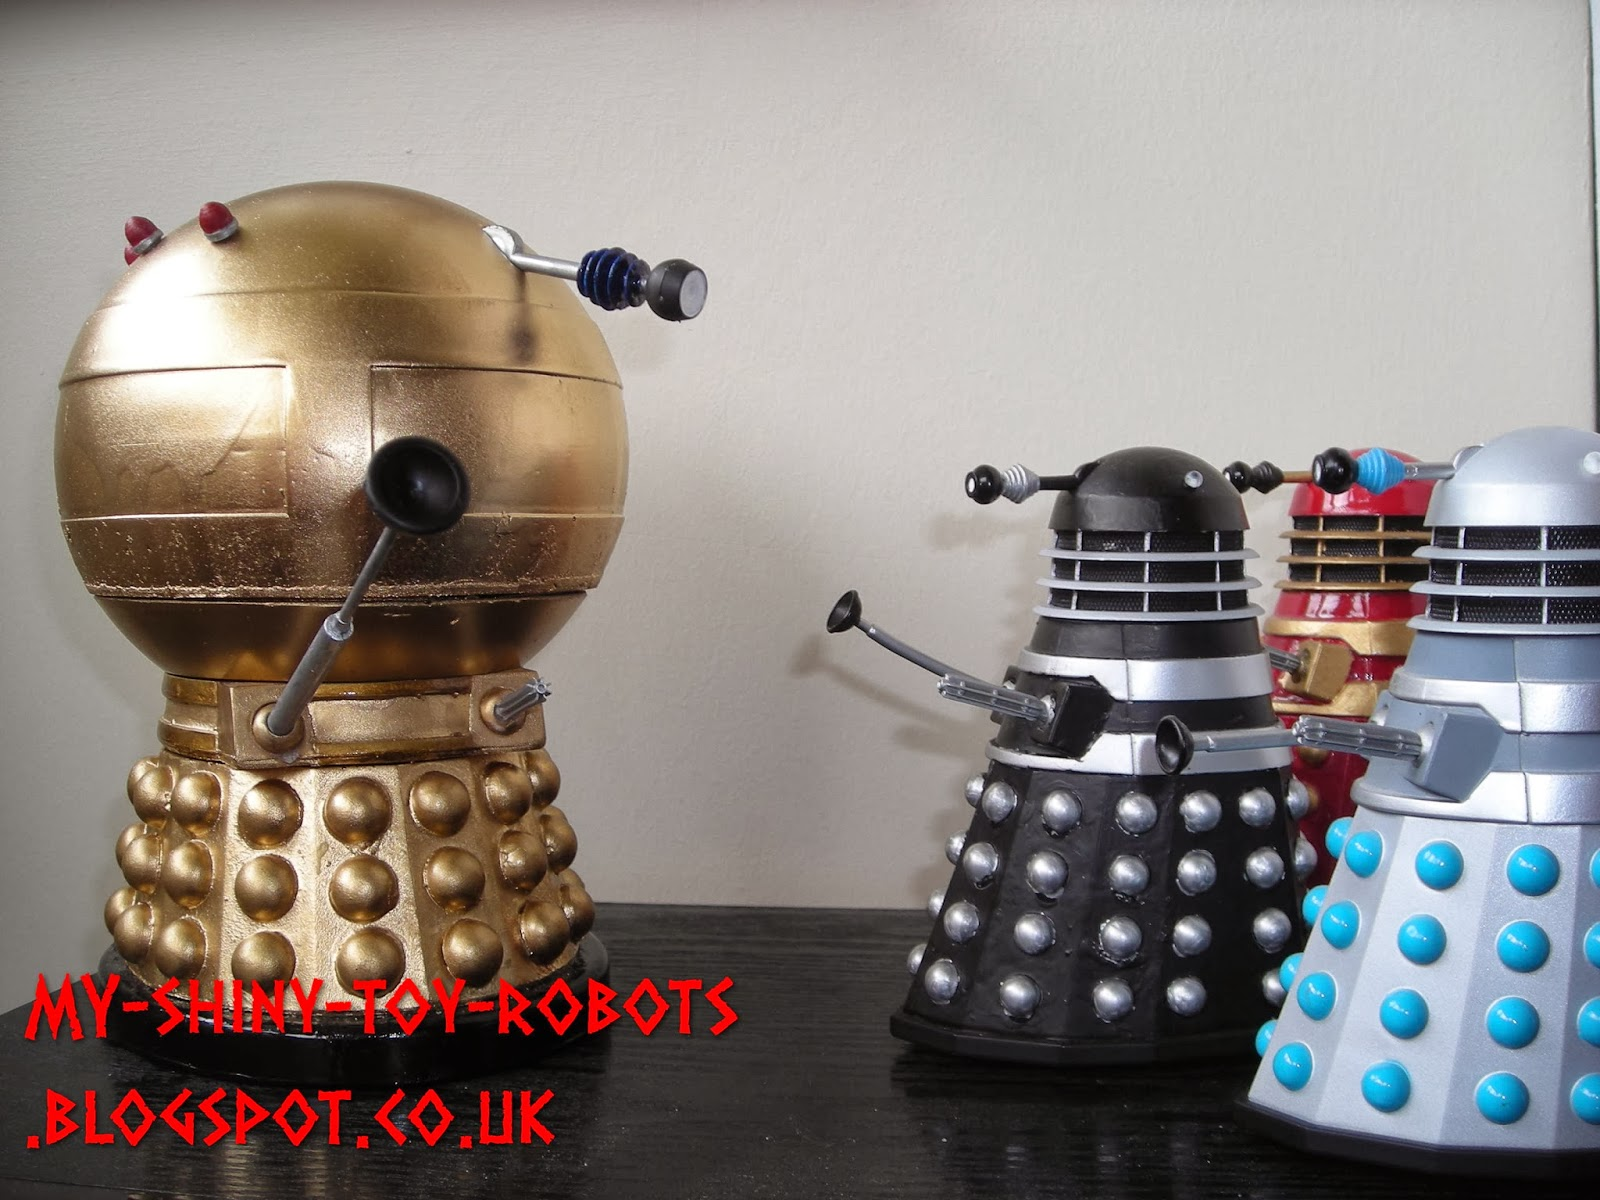 Commanding the Daleks